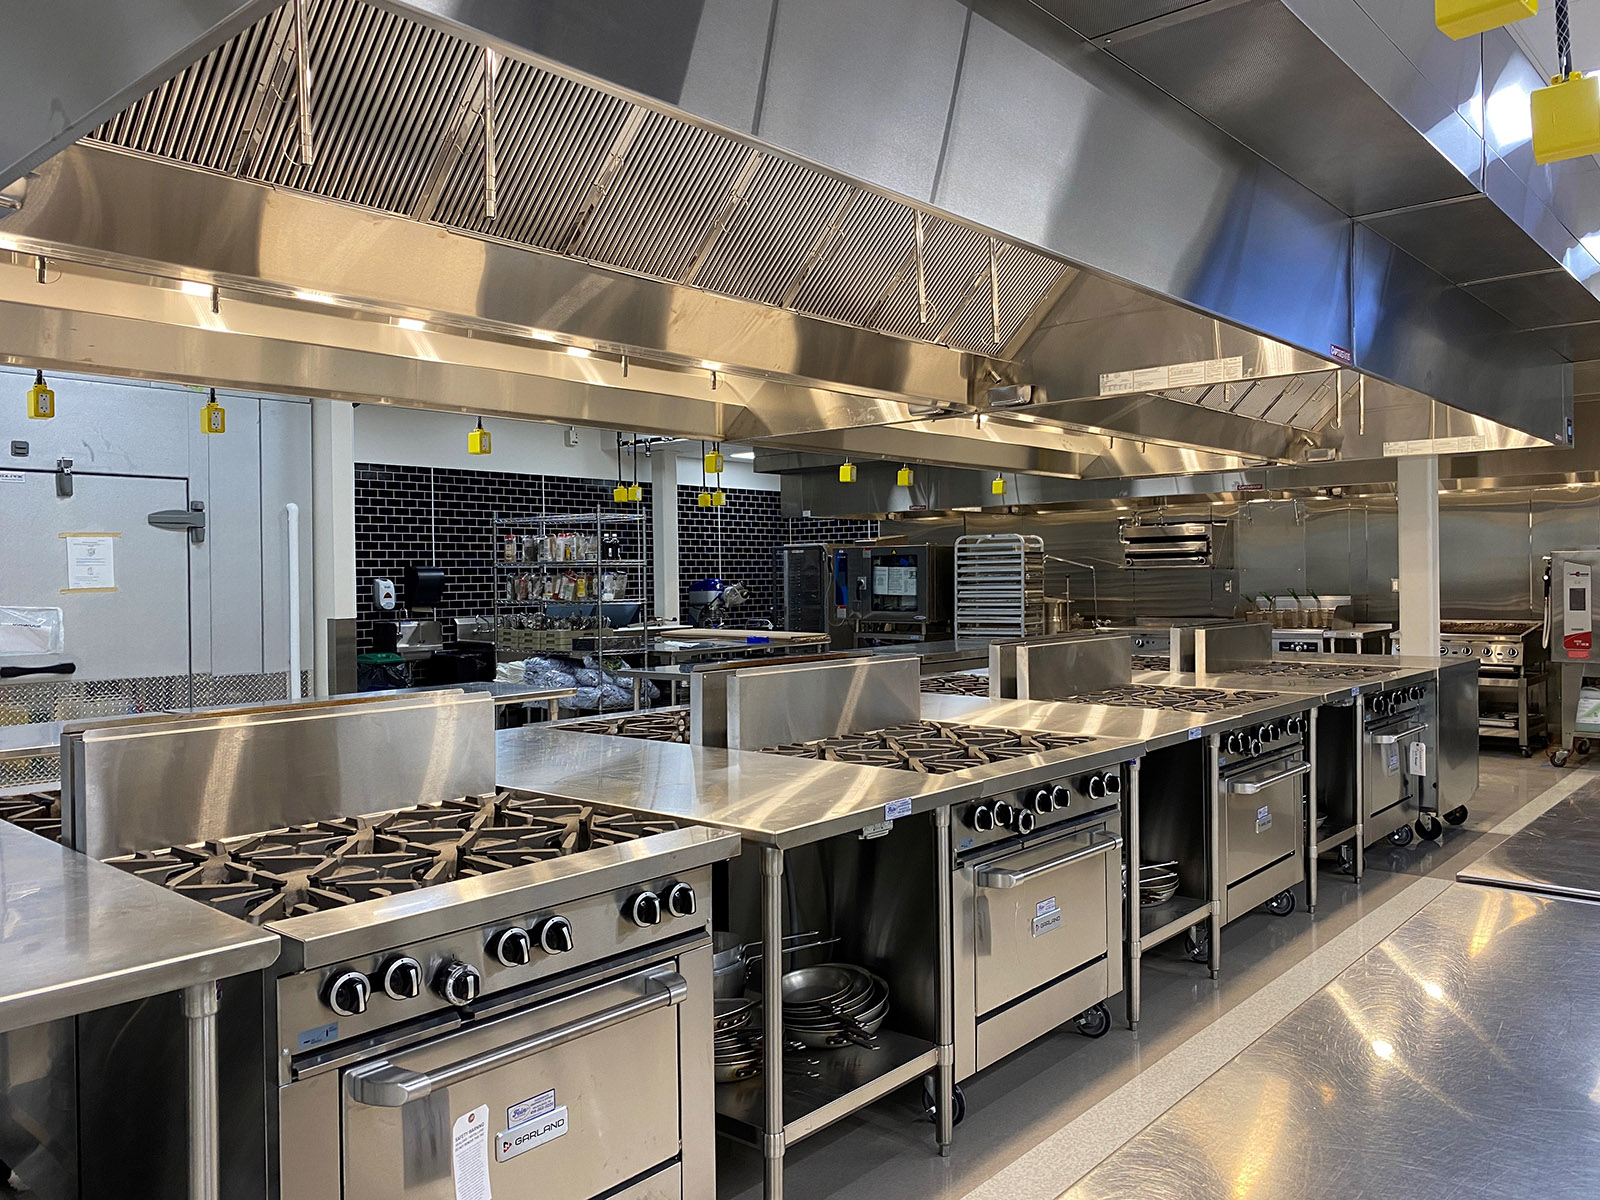 A new, state-of-the-art culinary arts learning environment has opened on Lakeshore Technical College's Cleveland campus.